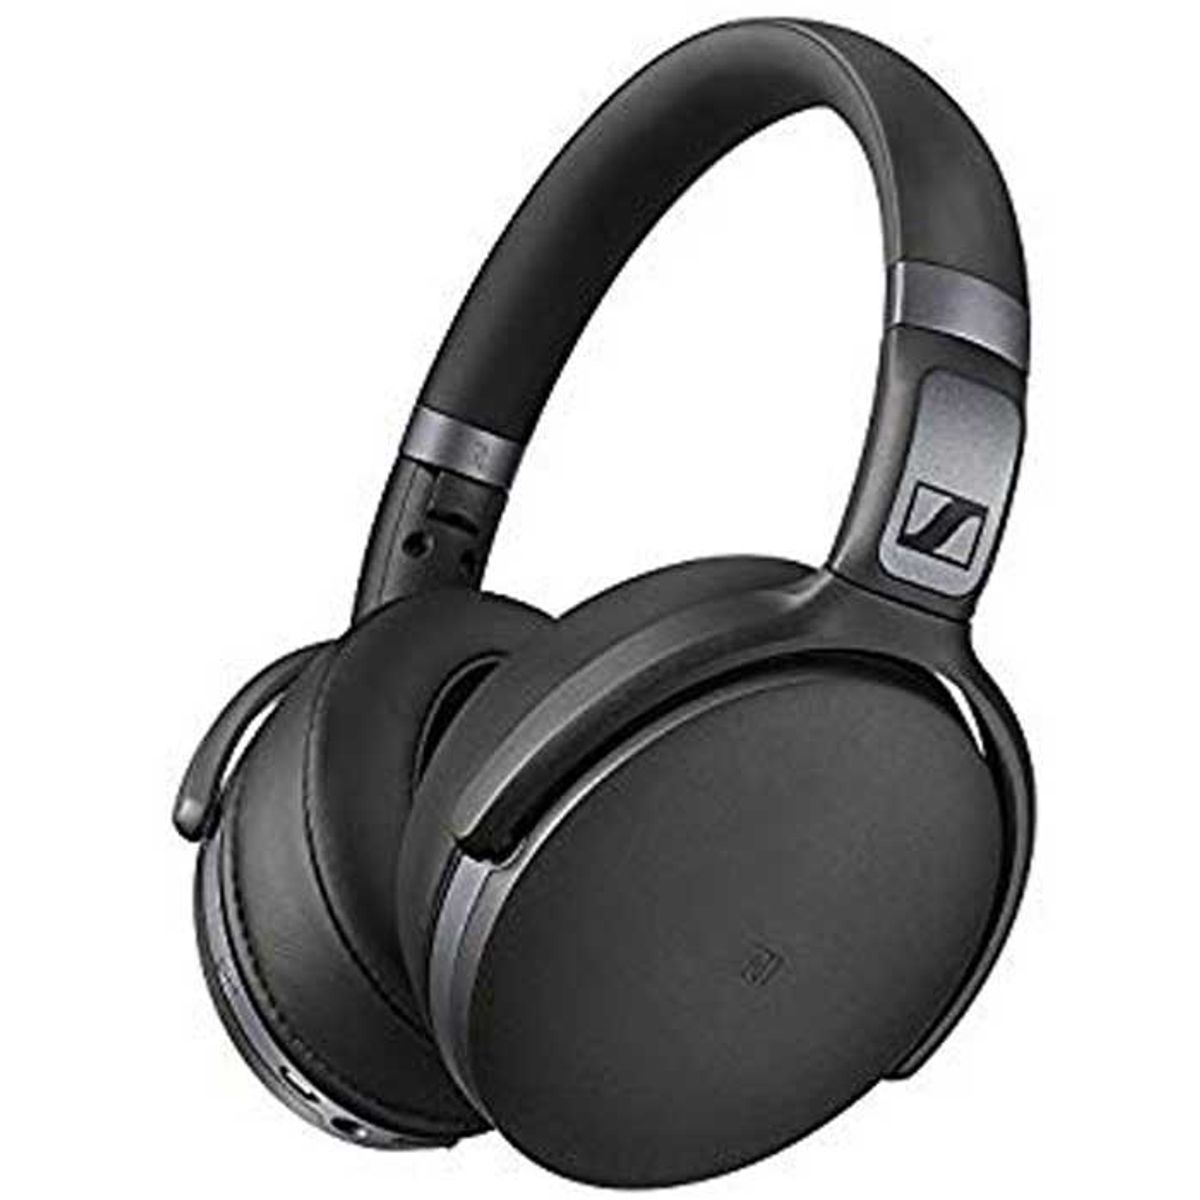 Best In Ear Headphones With Mic In India 4 September 2020 Digit In